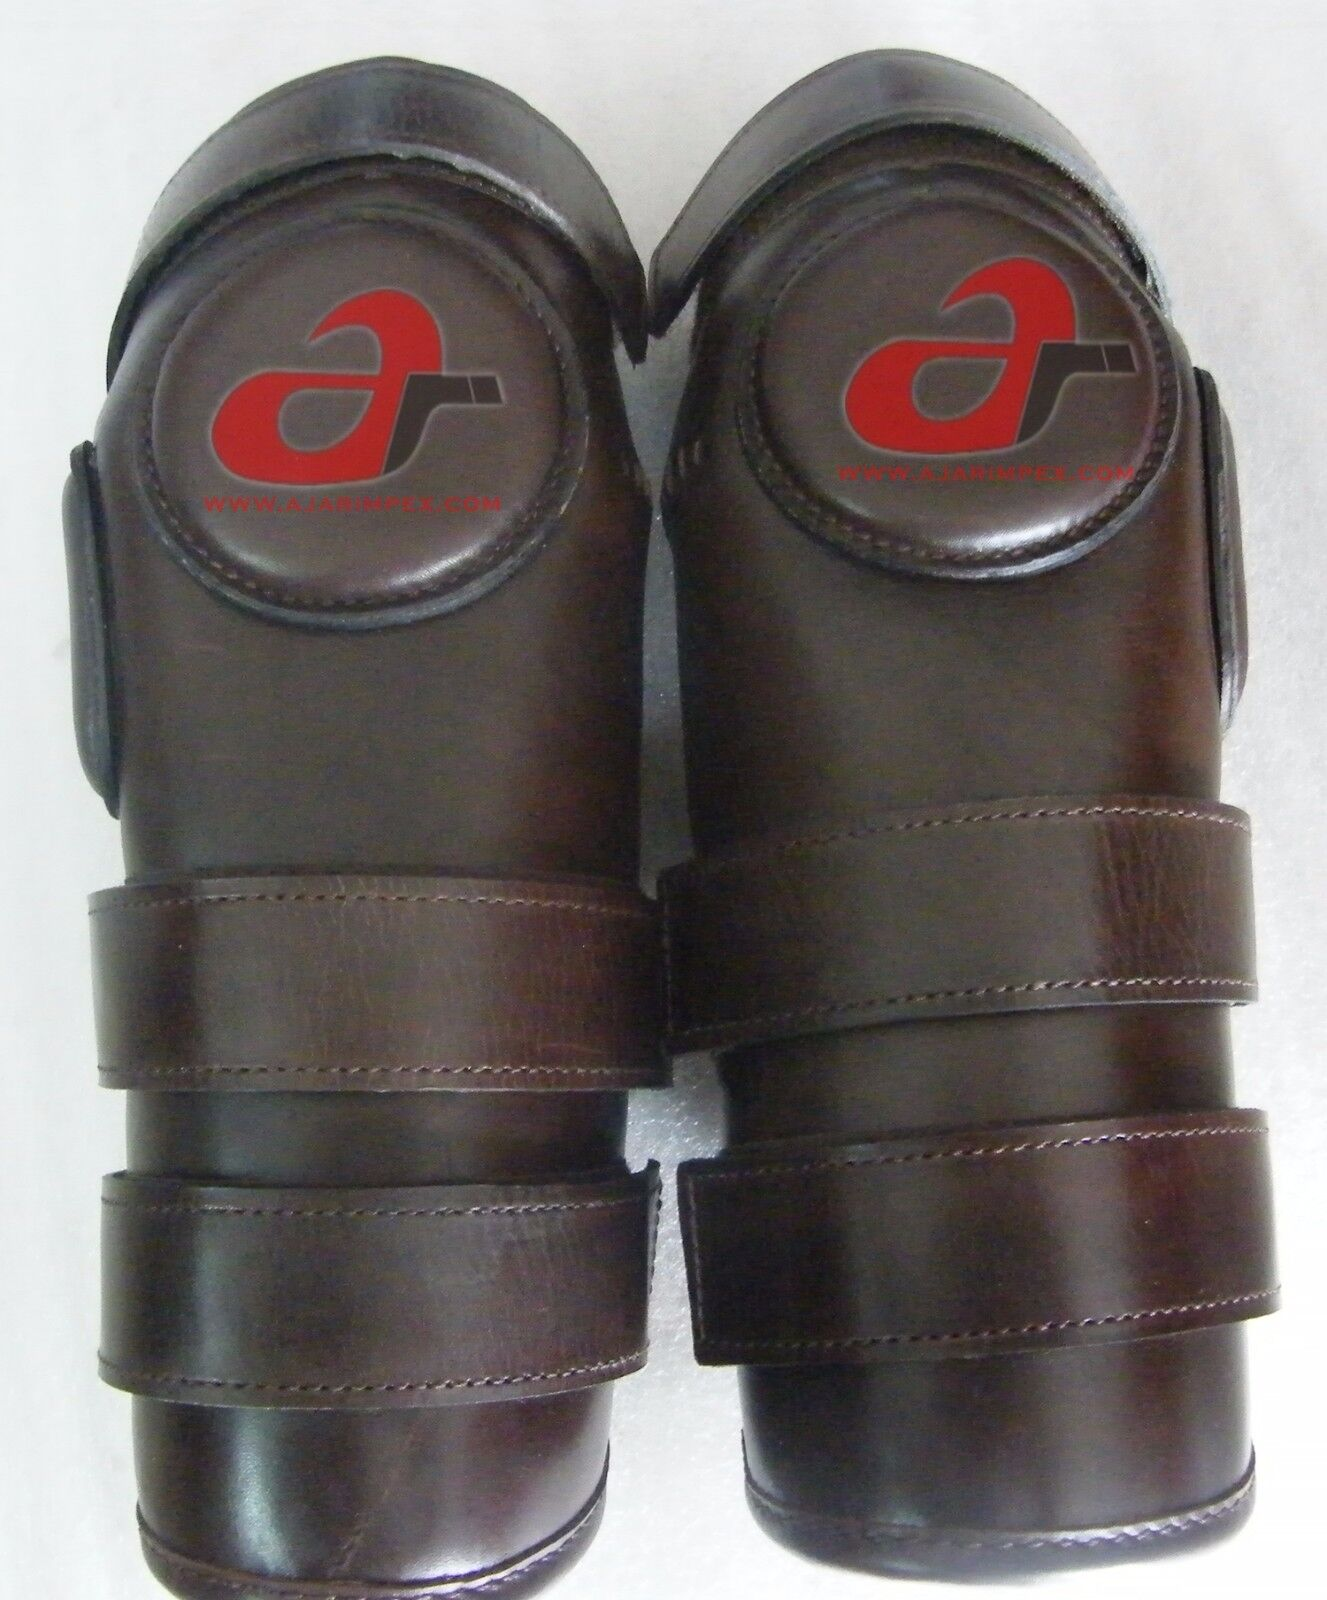 3 Strap Polo & Ridding Knee Guards-Leather and Padded 100% Real Leather-